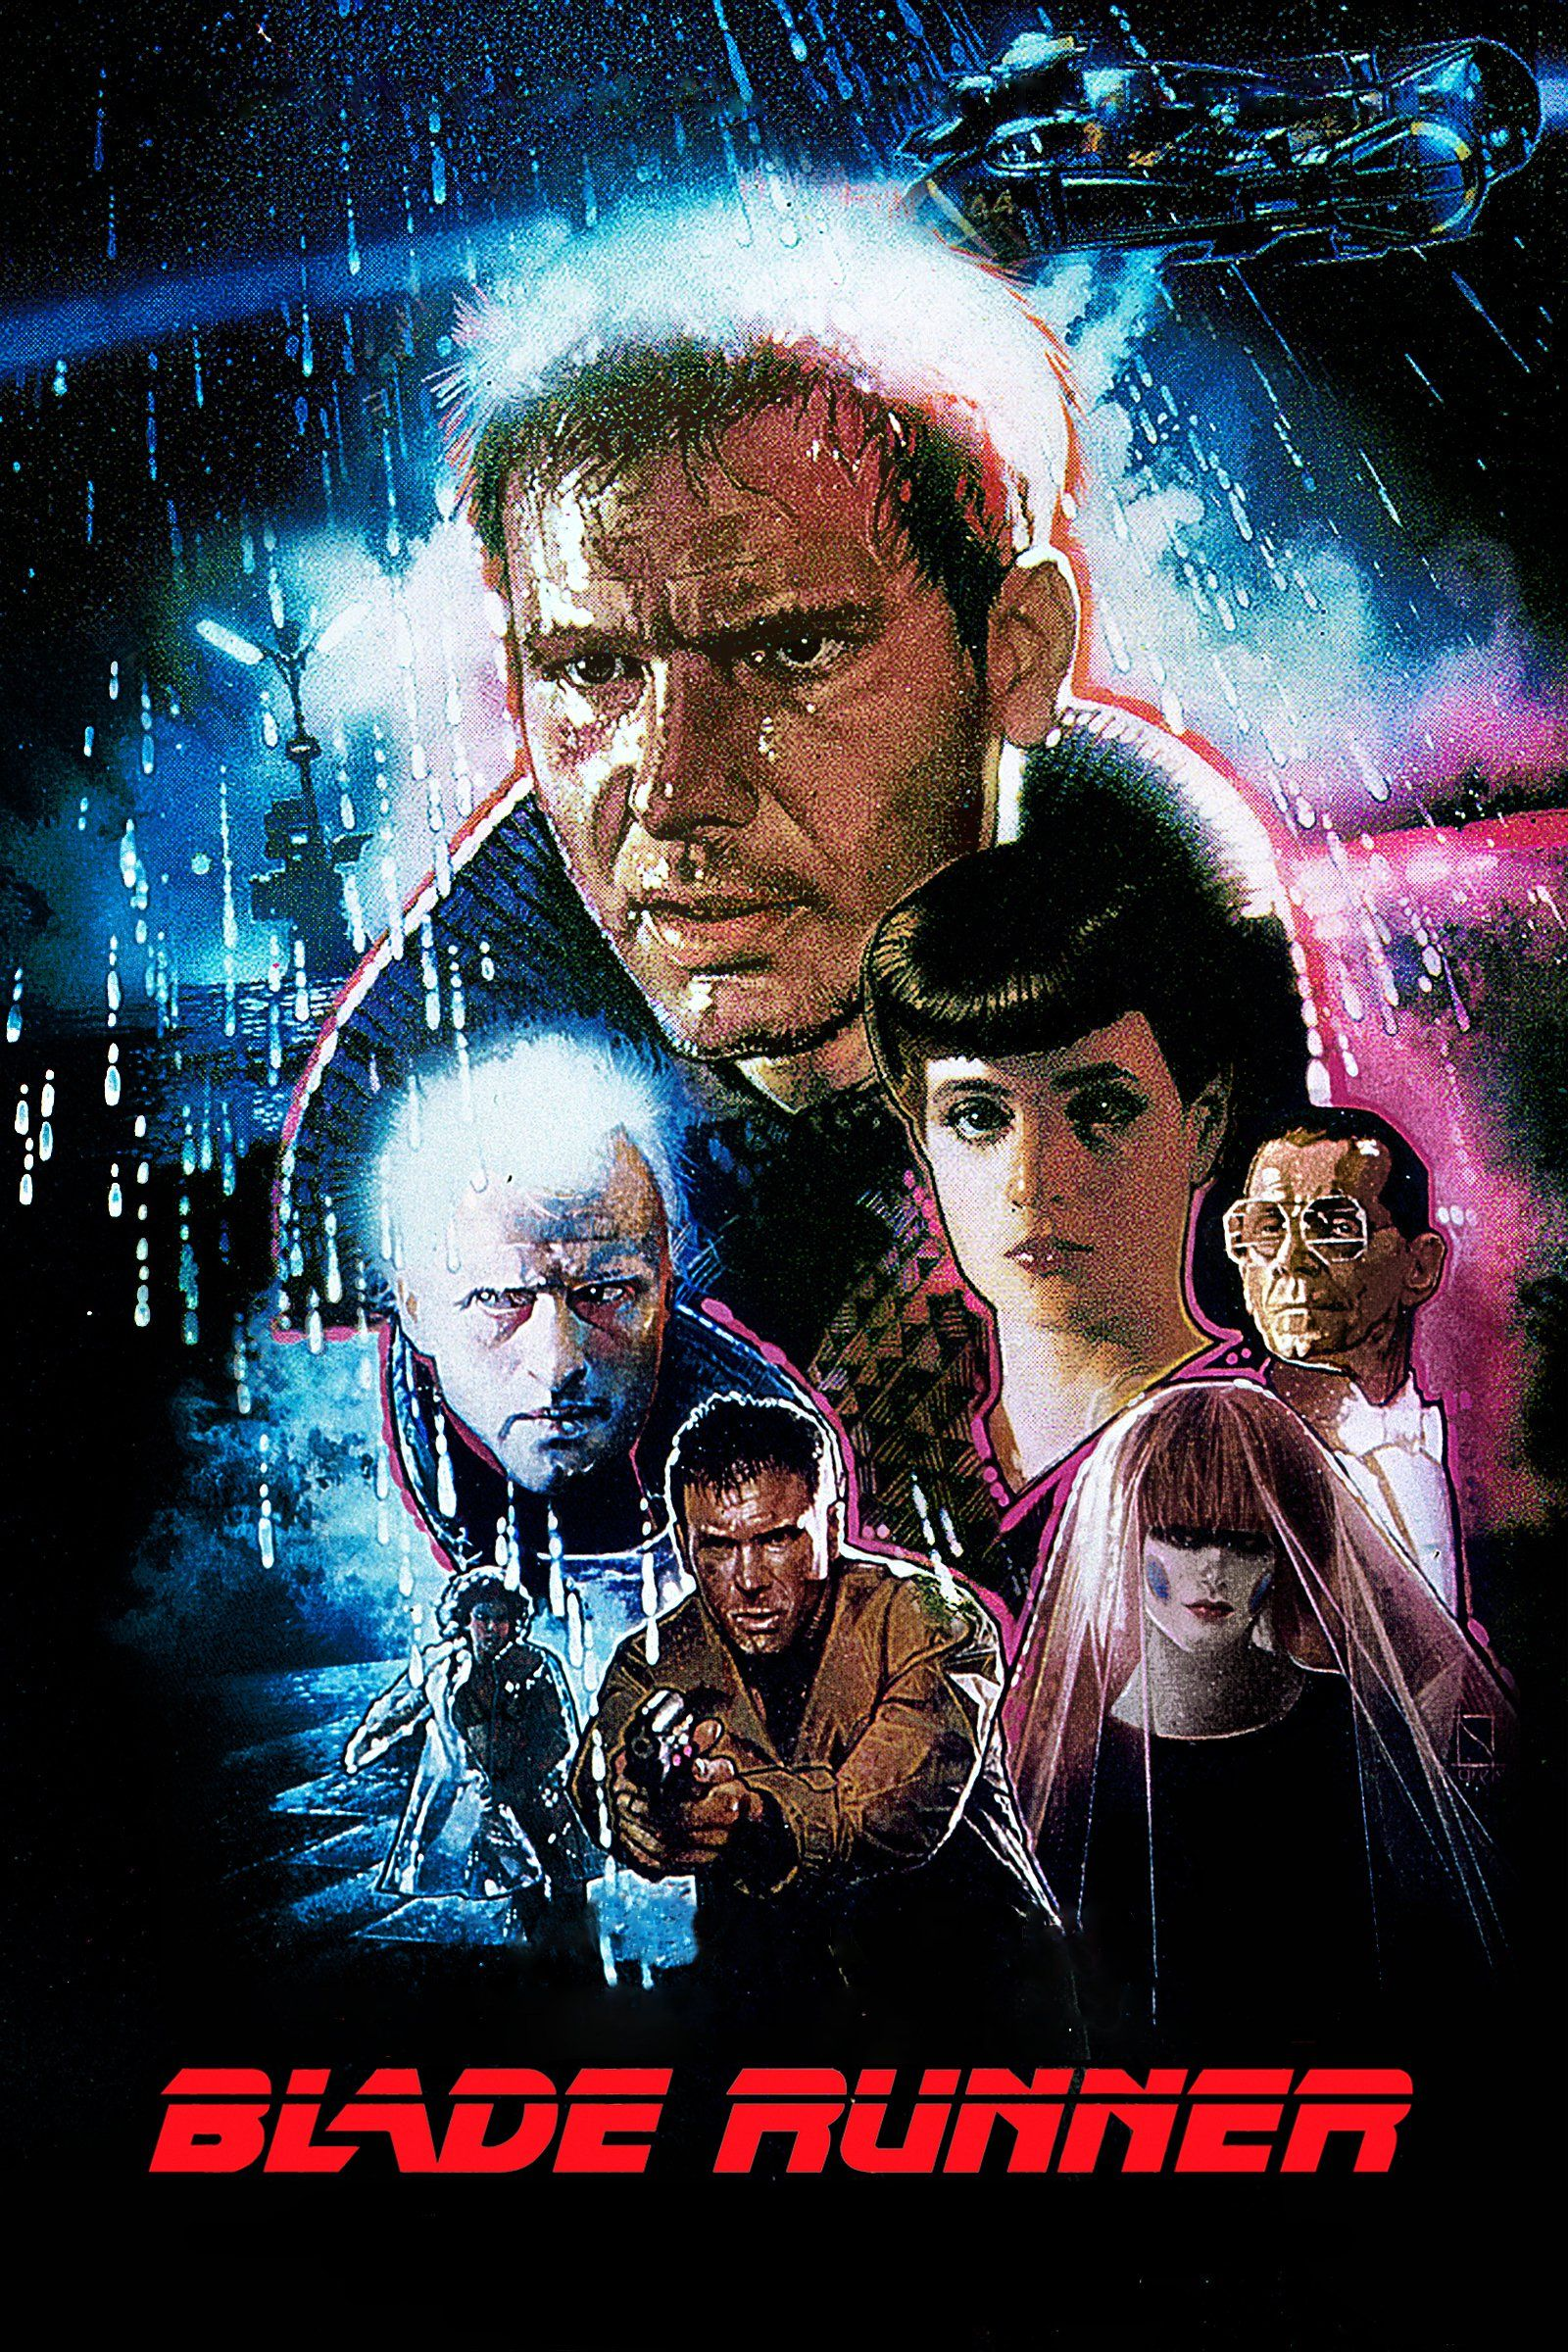 watch movie online blade runner free download full hd quality